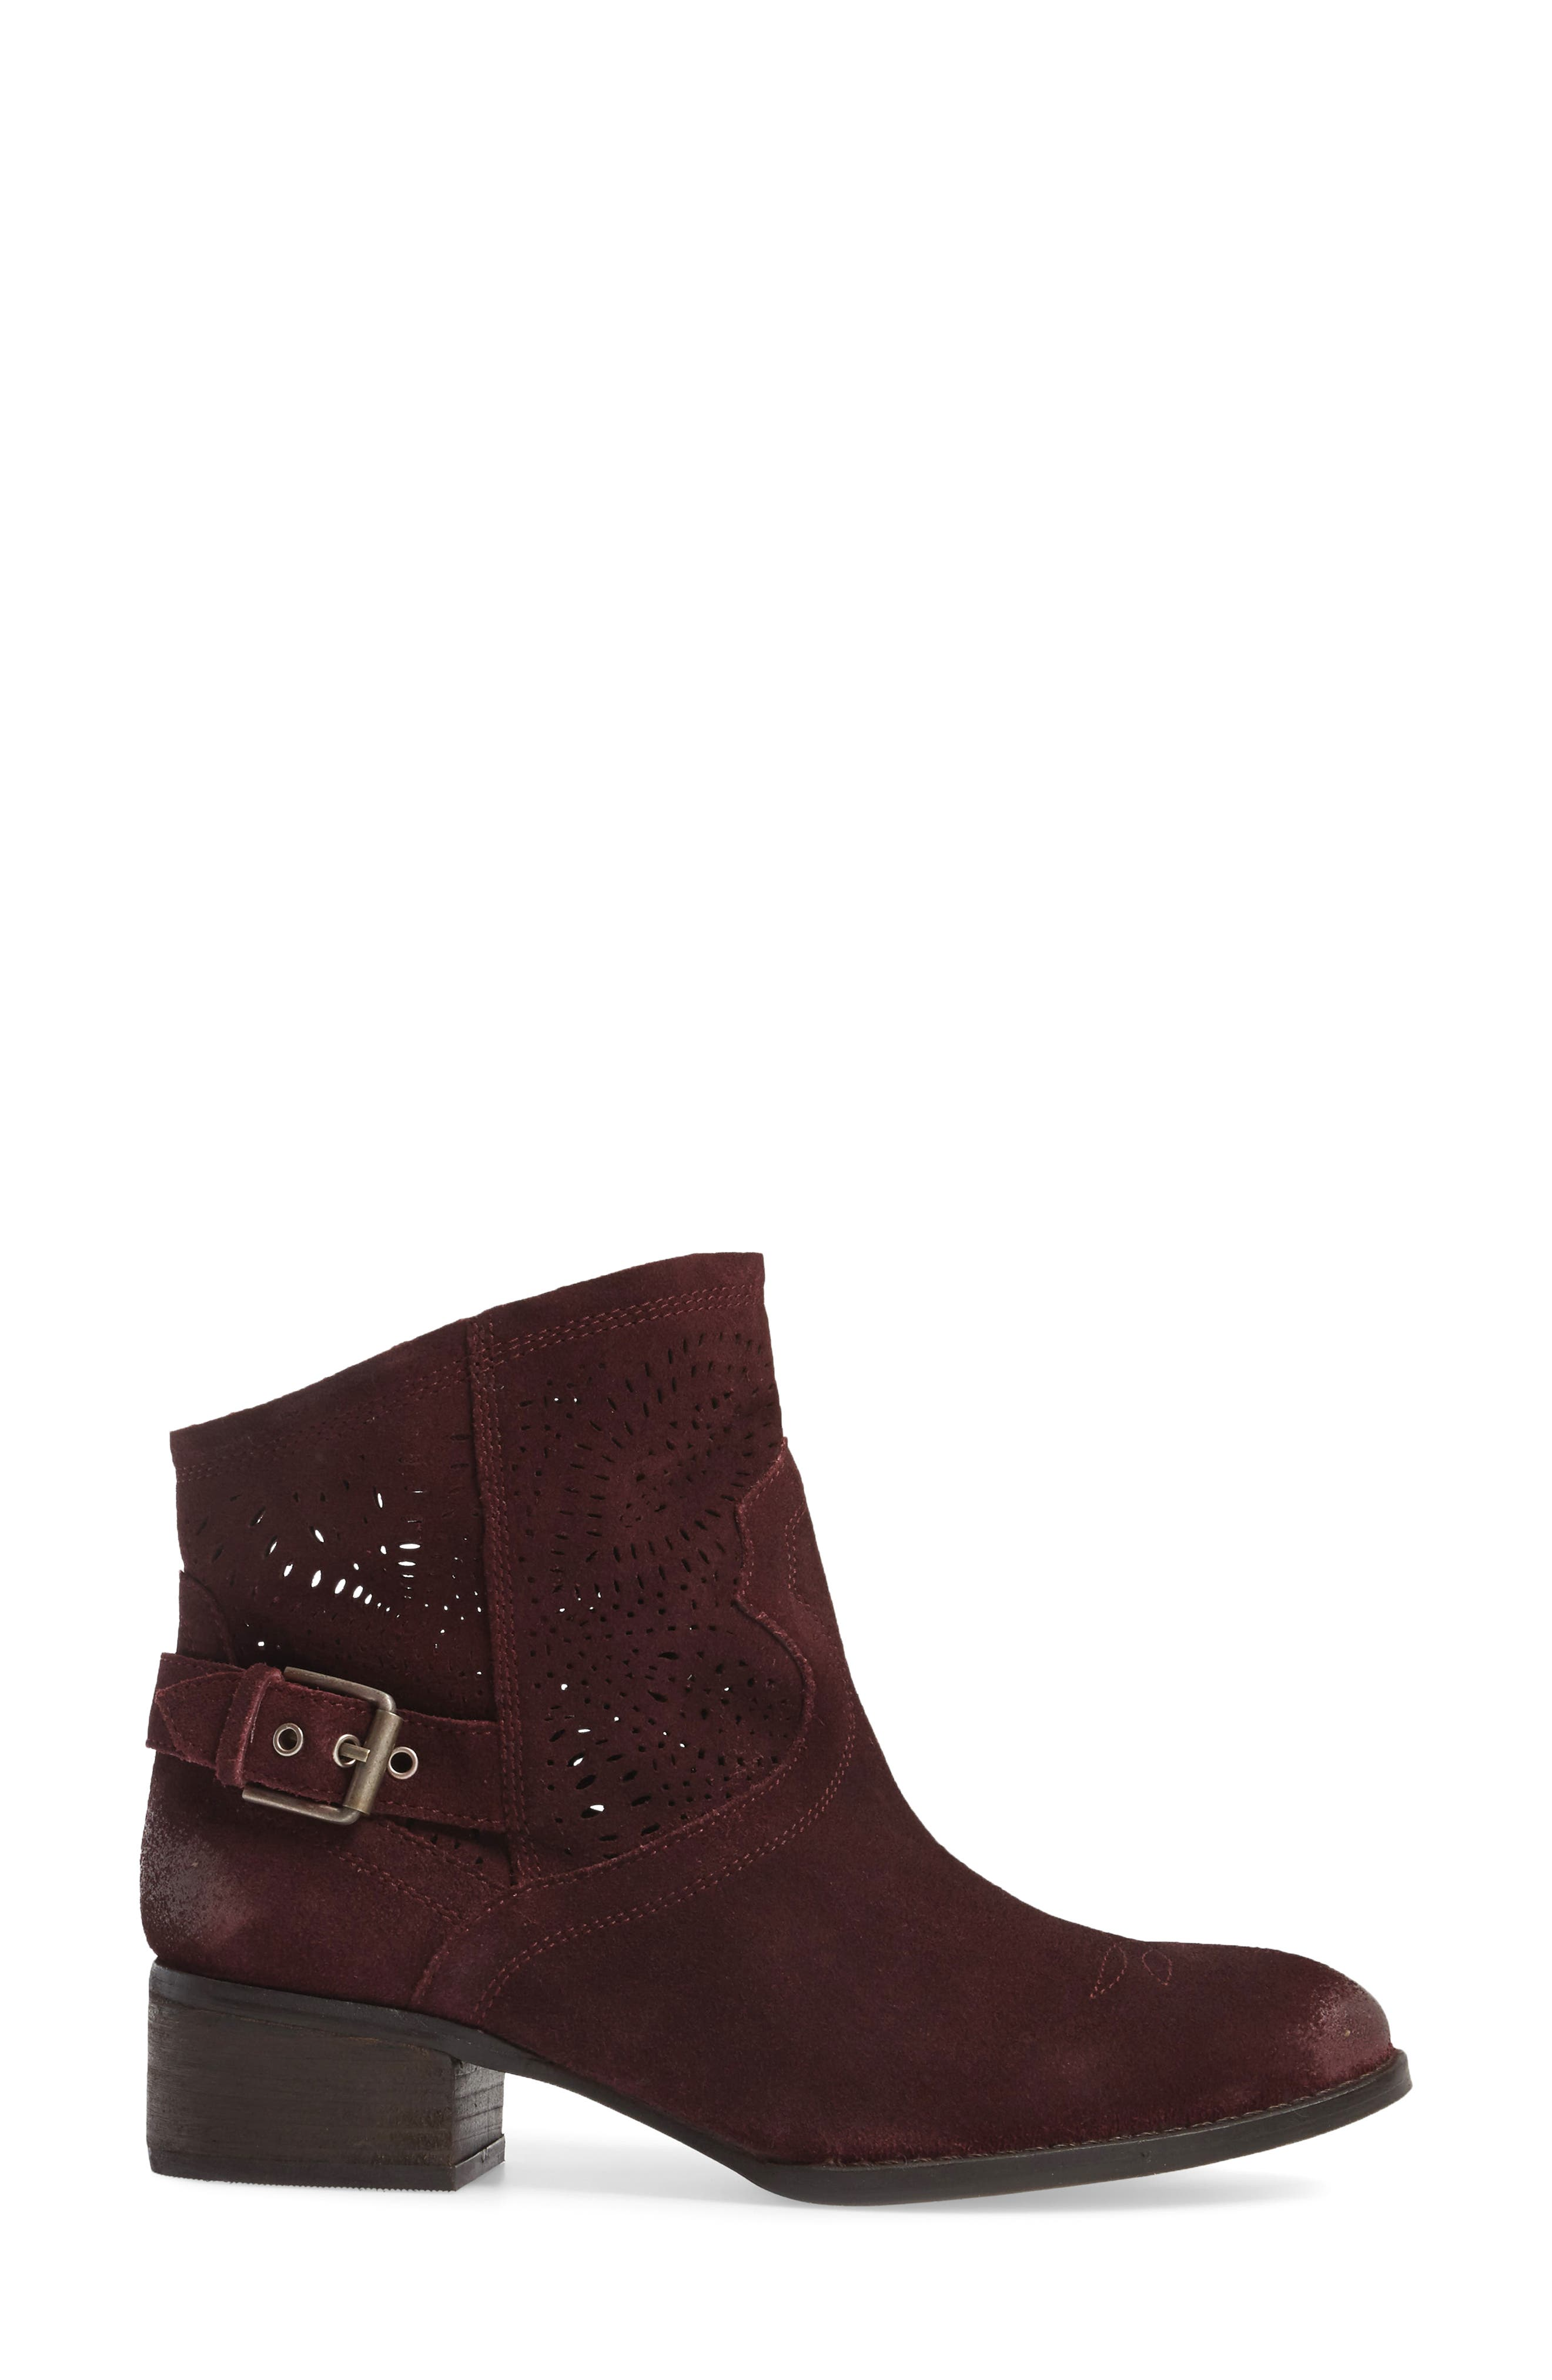 Zoey Perforated Bootie,                             Alternate thumbnail 12, color,